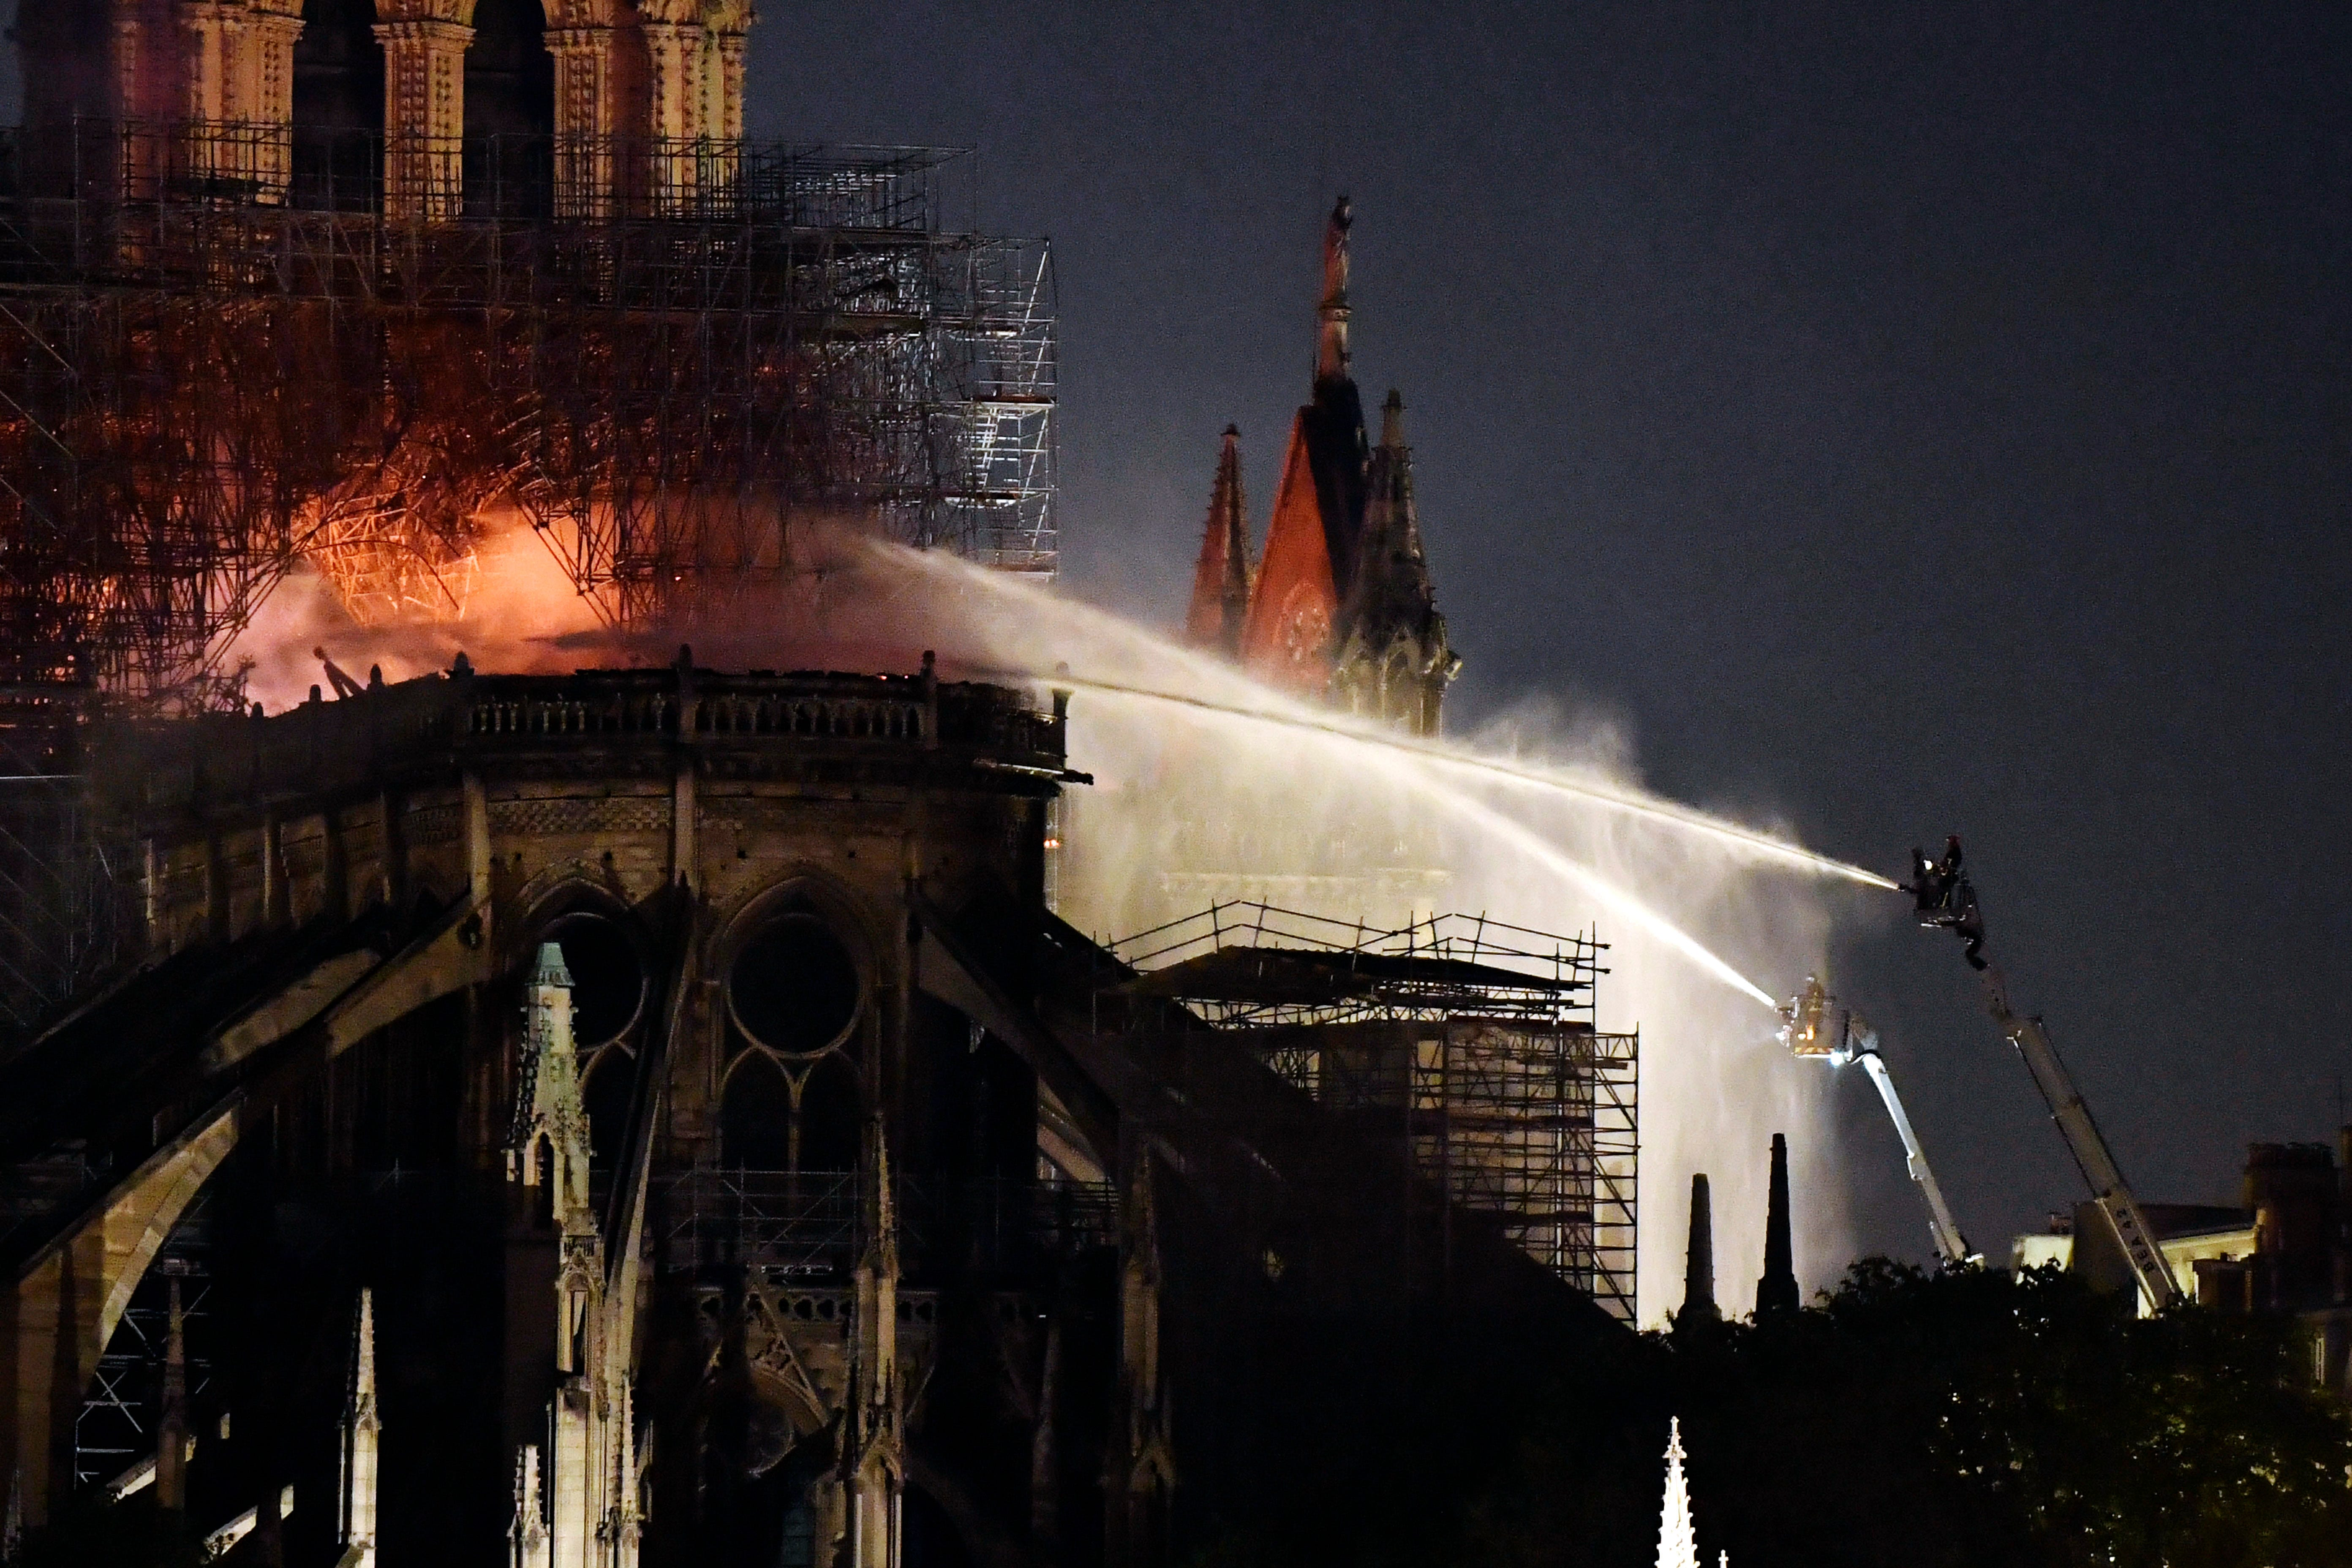 French firefighters spray water to put out a fire on the roof of the Notre Dame Cathedral in Paris on April 15, 2019.